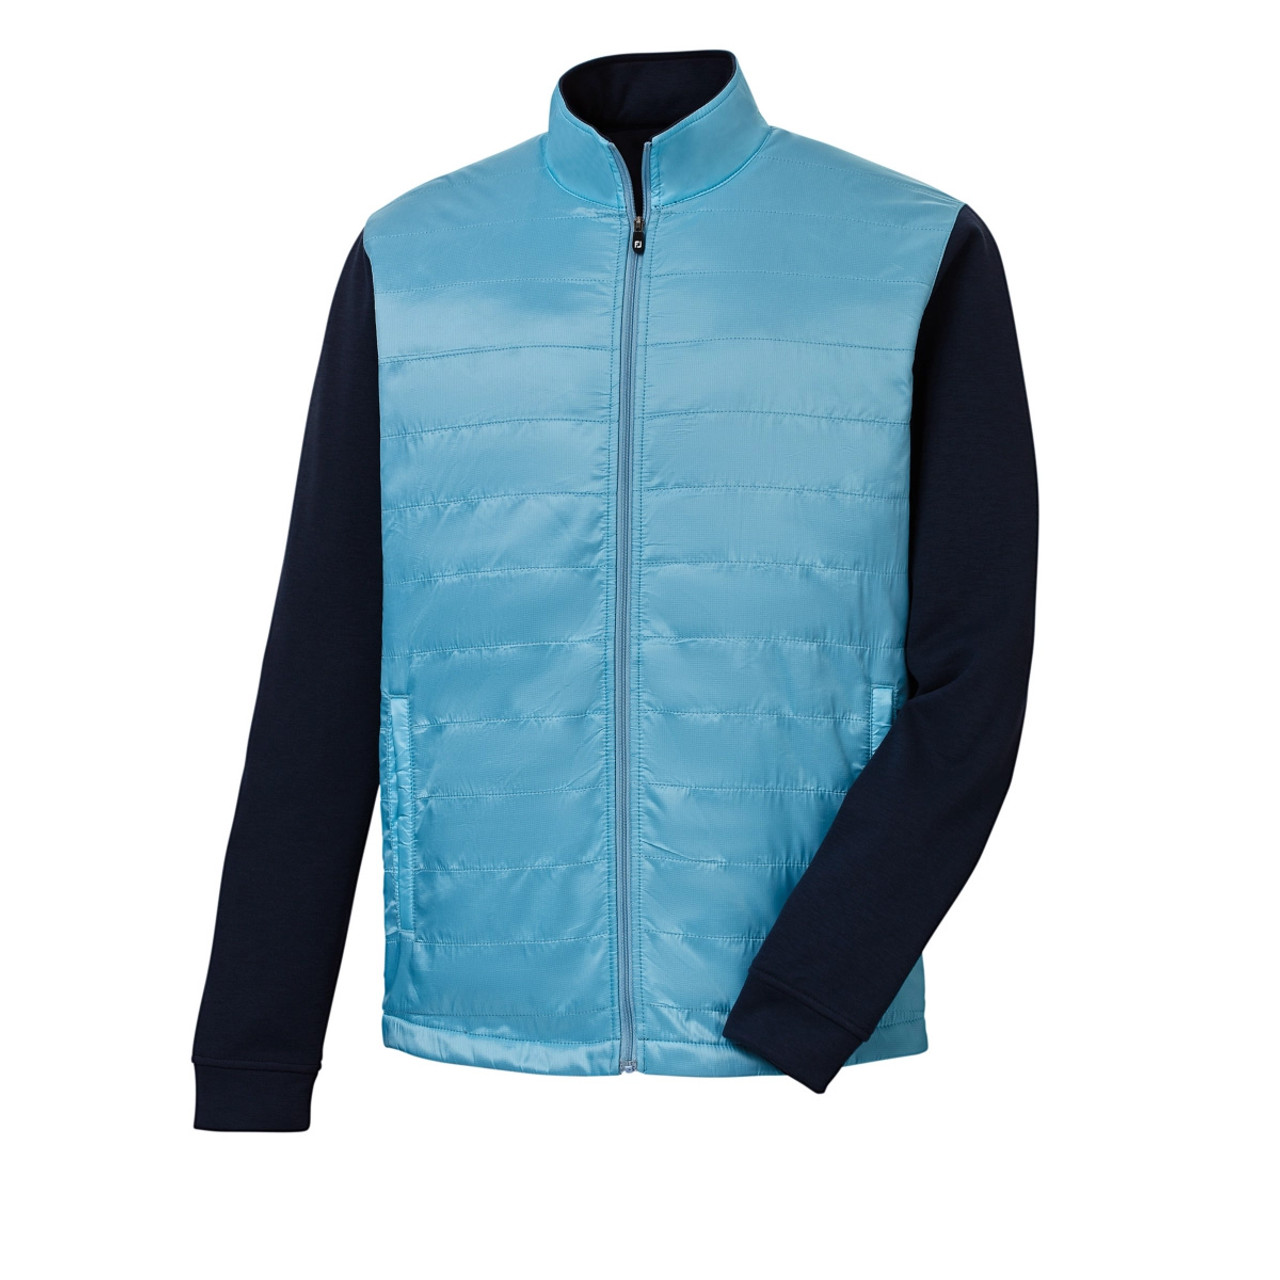 FootJoy Full-Zip Hybrid Jacket - Light Blue / Navy (25211)